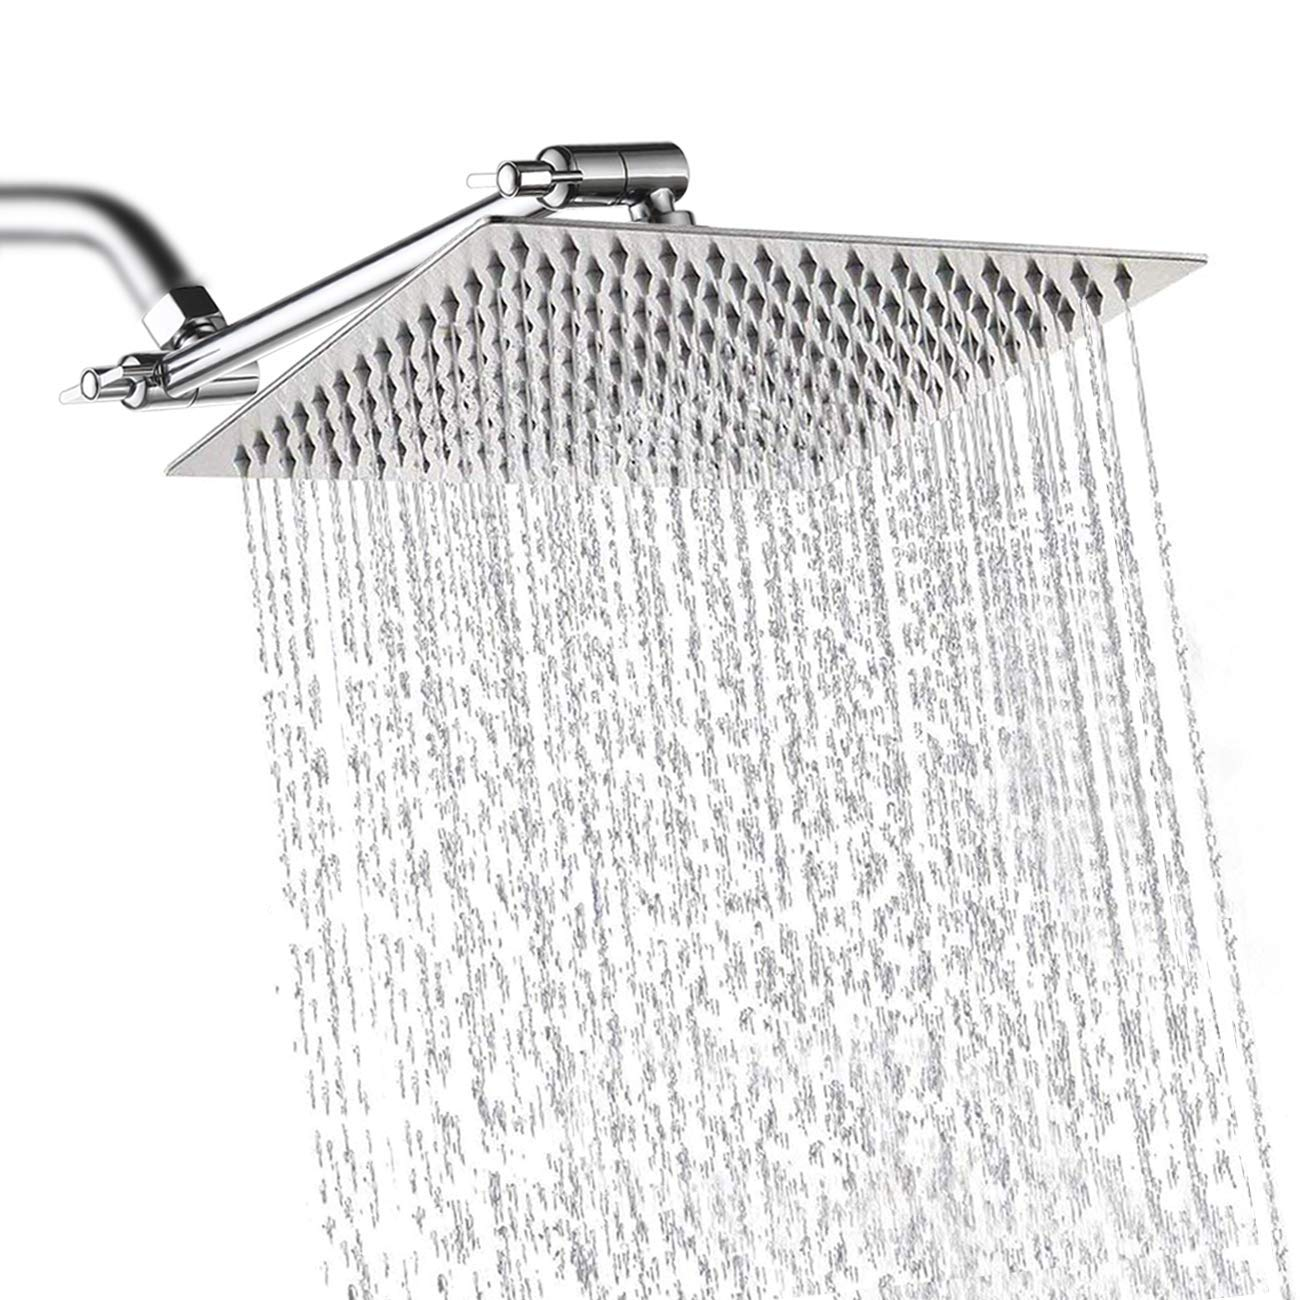 WILLSLAND 10 Rain Shower Head SUS304 Stainless Steel with 11 Adjustable Extension Arm, Rainfall Shower Head High Pressure Large Ultrathin Anti-leaking Design, Fixed Tightly Rain Shower